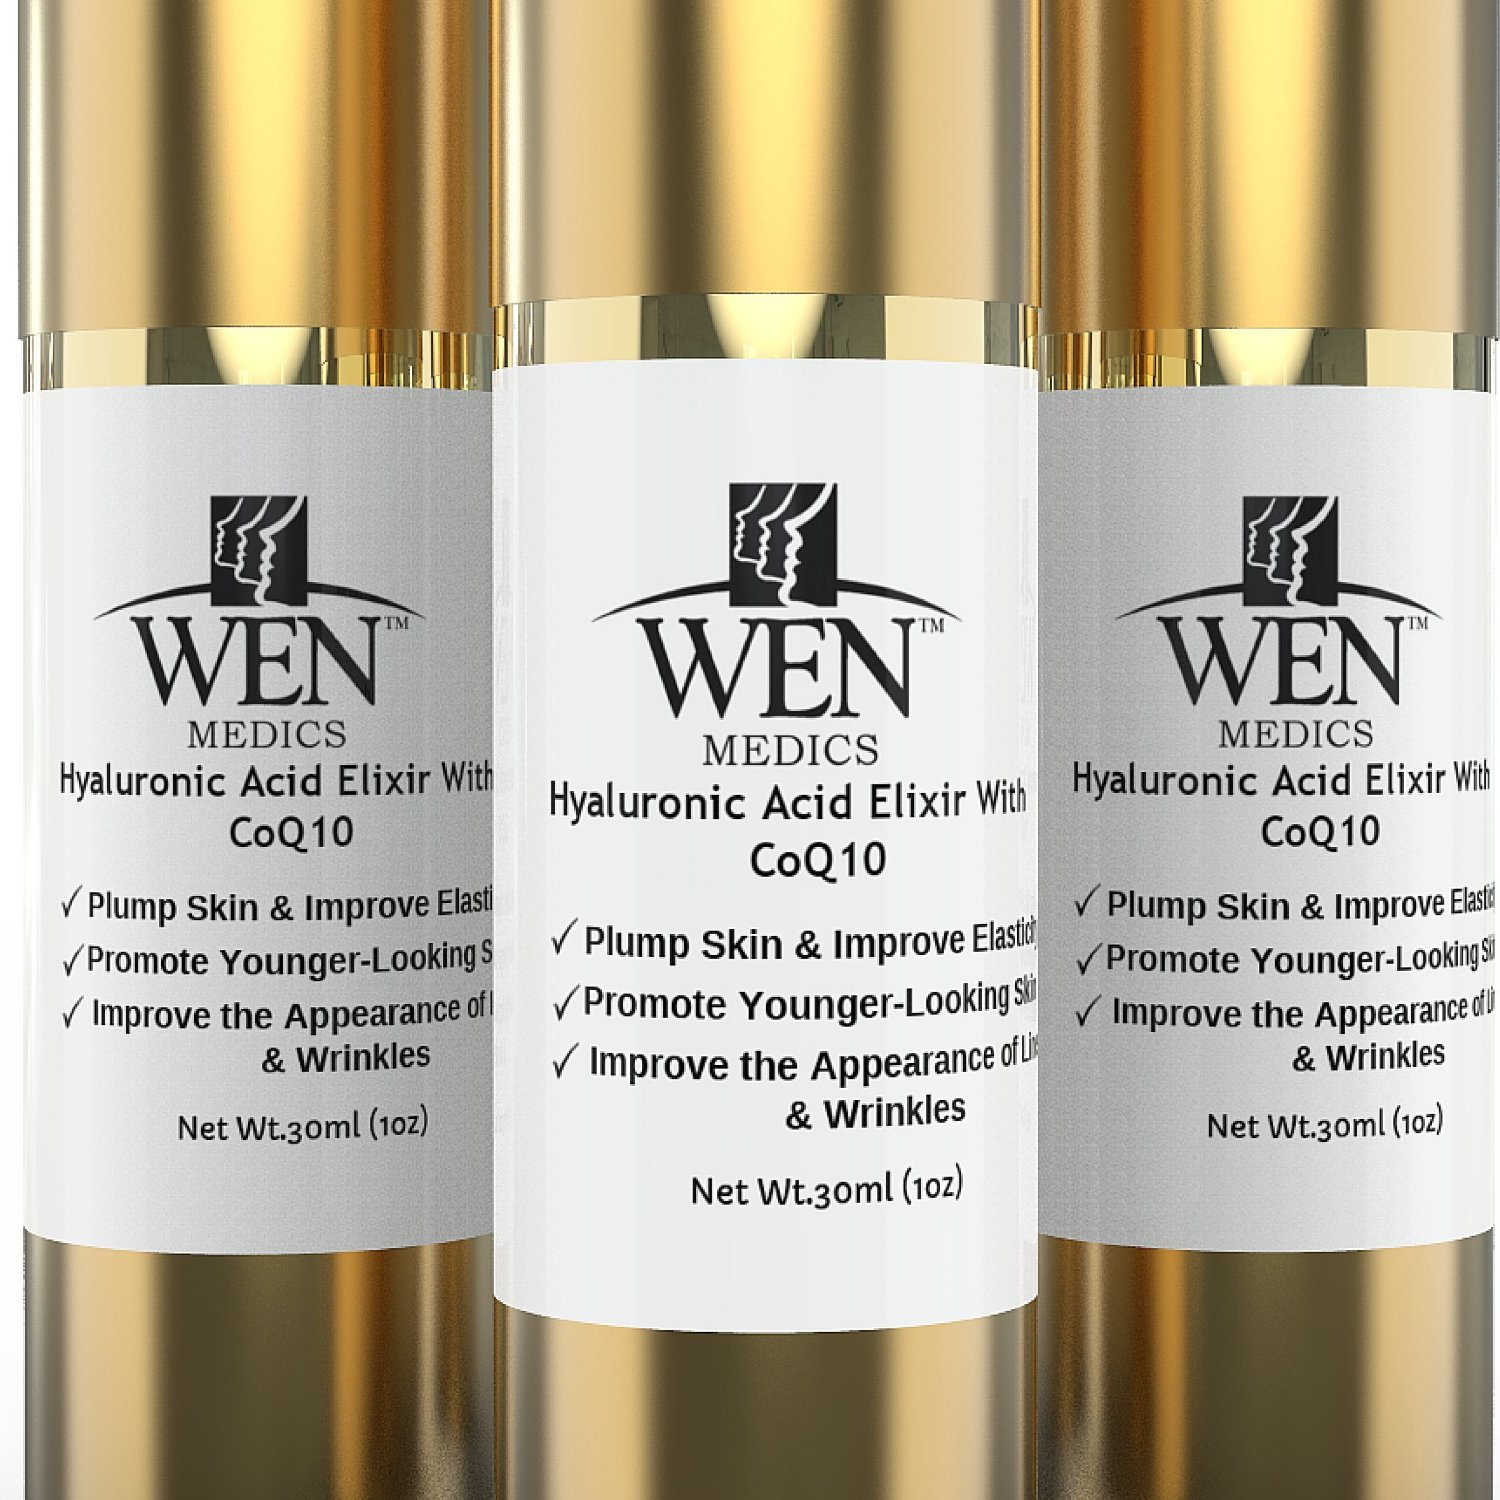 Hyaluronic Acid Serum for Face By WENmedics| Anti-Aging Wrinkle Serum Moisturizer with Vit C,E CoQ10 & Peptides|For Radiant Youthful Skin|Fragrance Free - No Flaky Patches, Dryness or Irritation|1oz